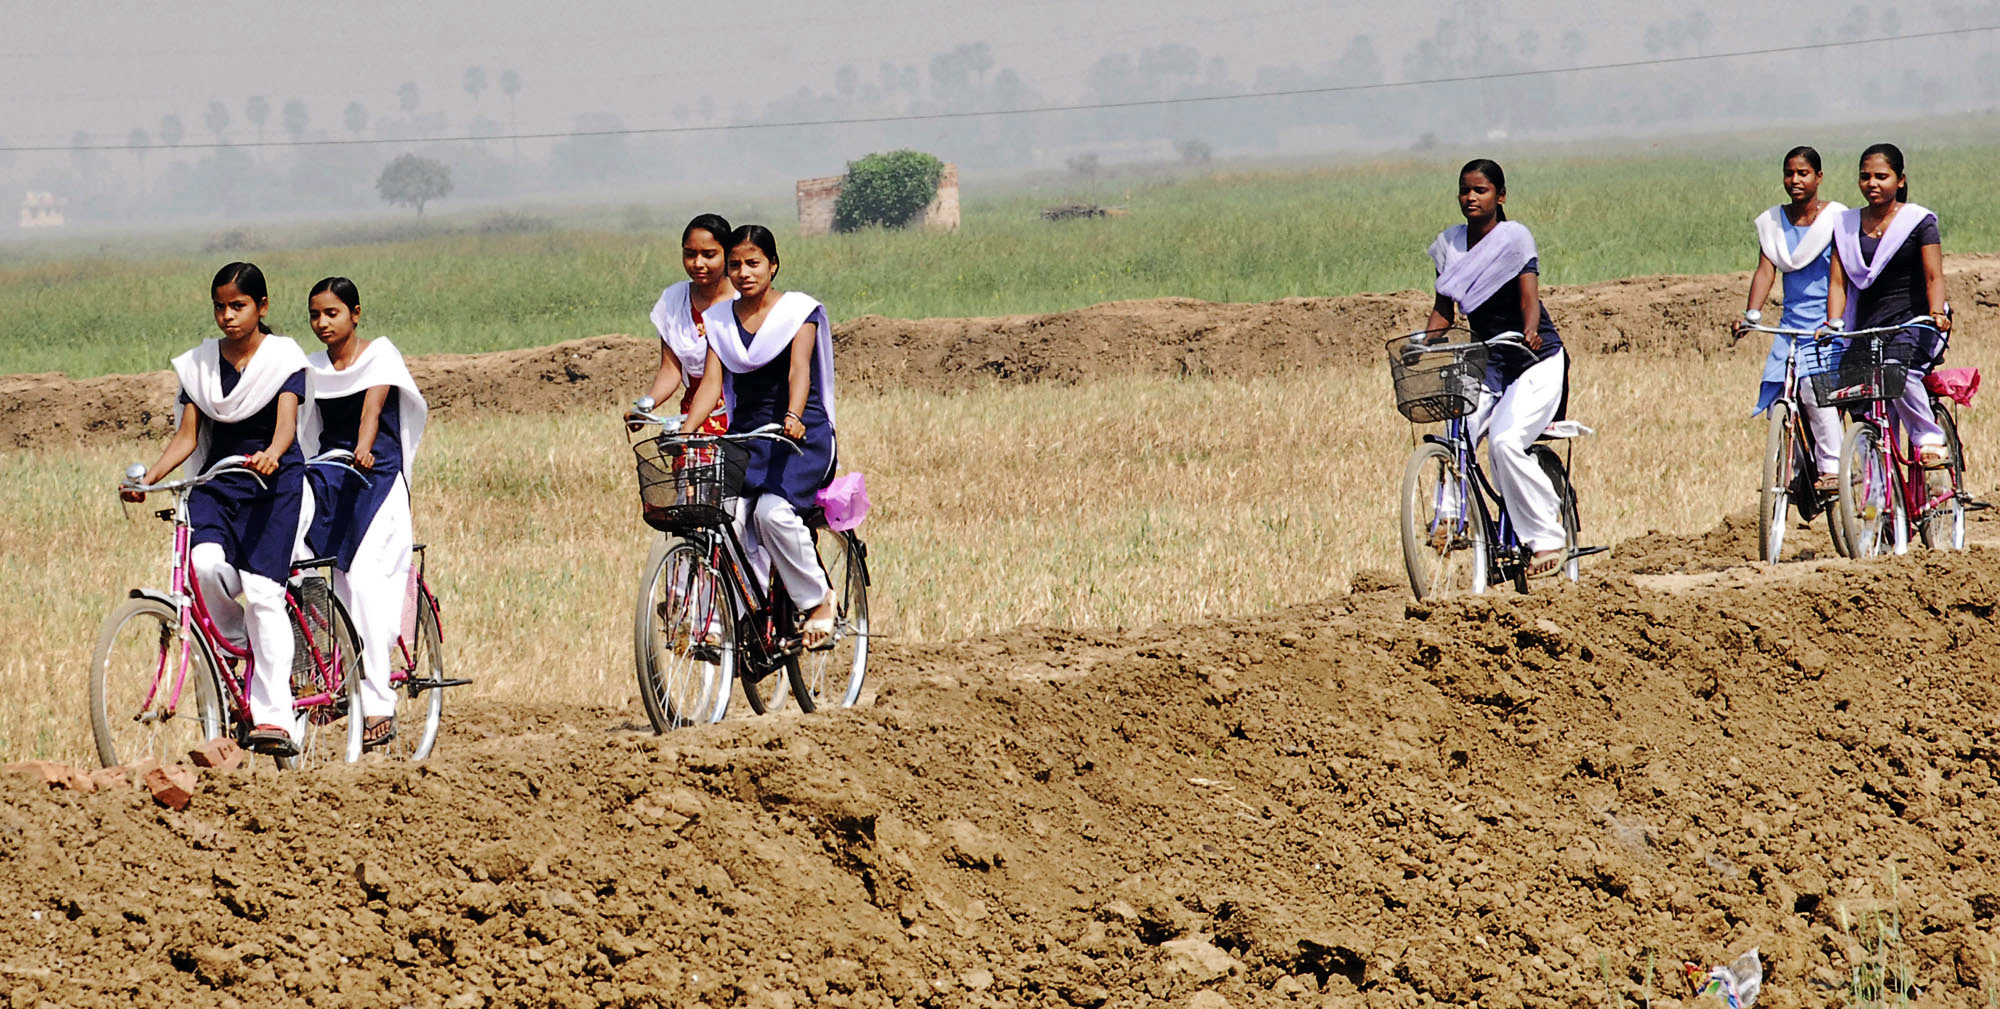 Indian schoolgirls ride bicycles, received under a Bihar government program of giving bicycles to teenage girls to keep them in school.